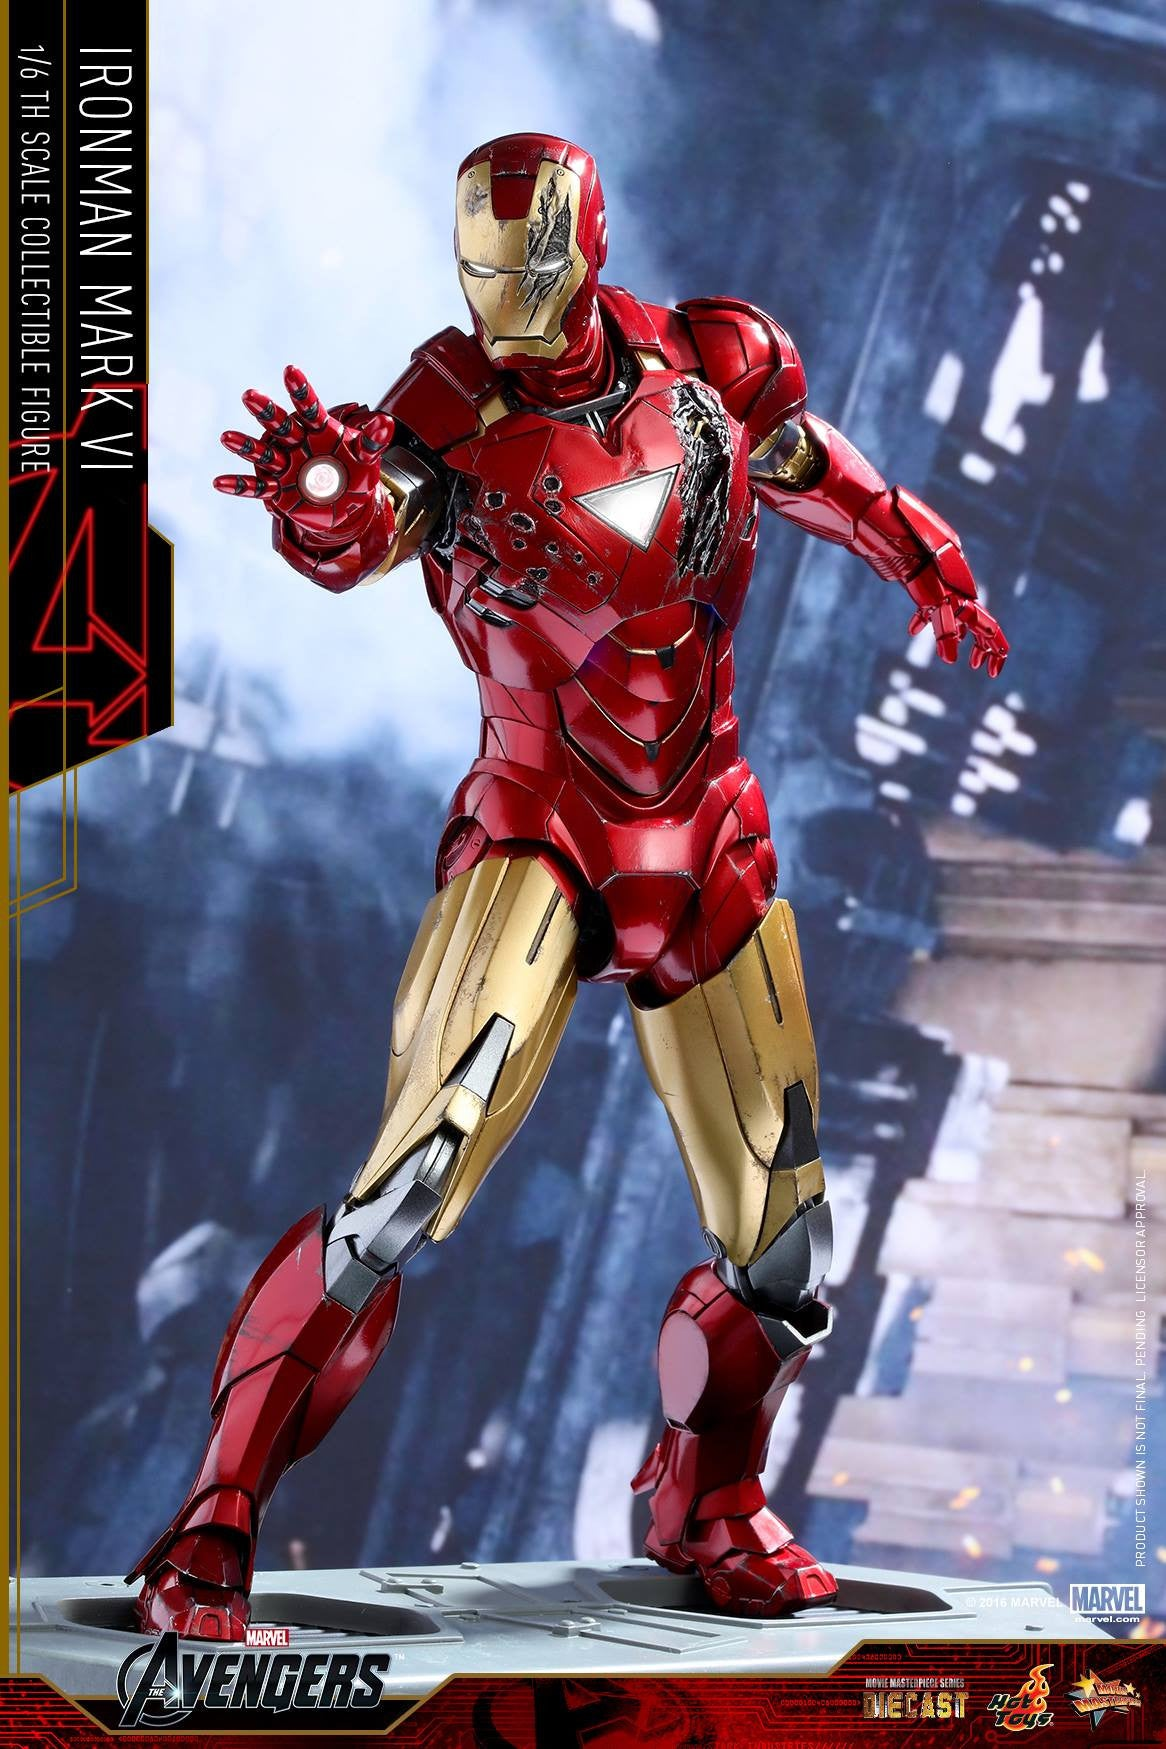 Hot Toys - MMS378D17 - The Avengers - Iron Man Mark VI (DIECAST) (Normal Edition) - Marvelous Toys - 4